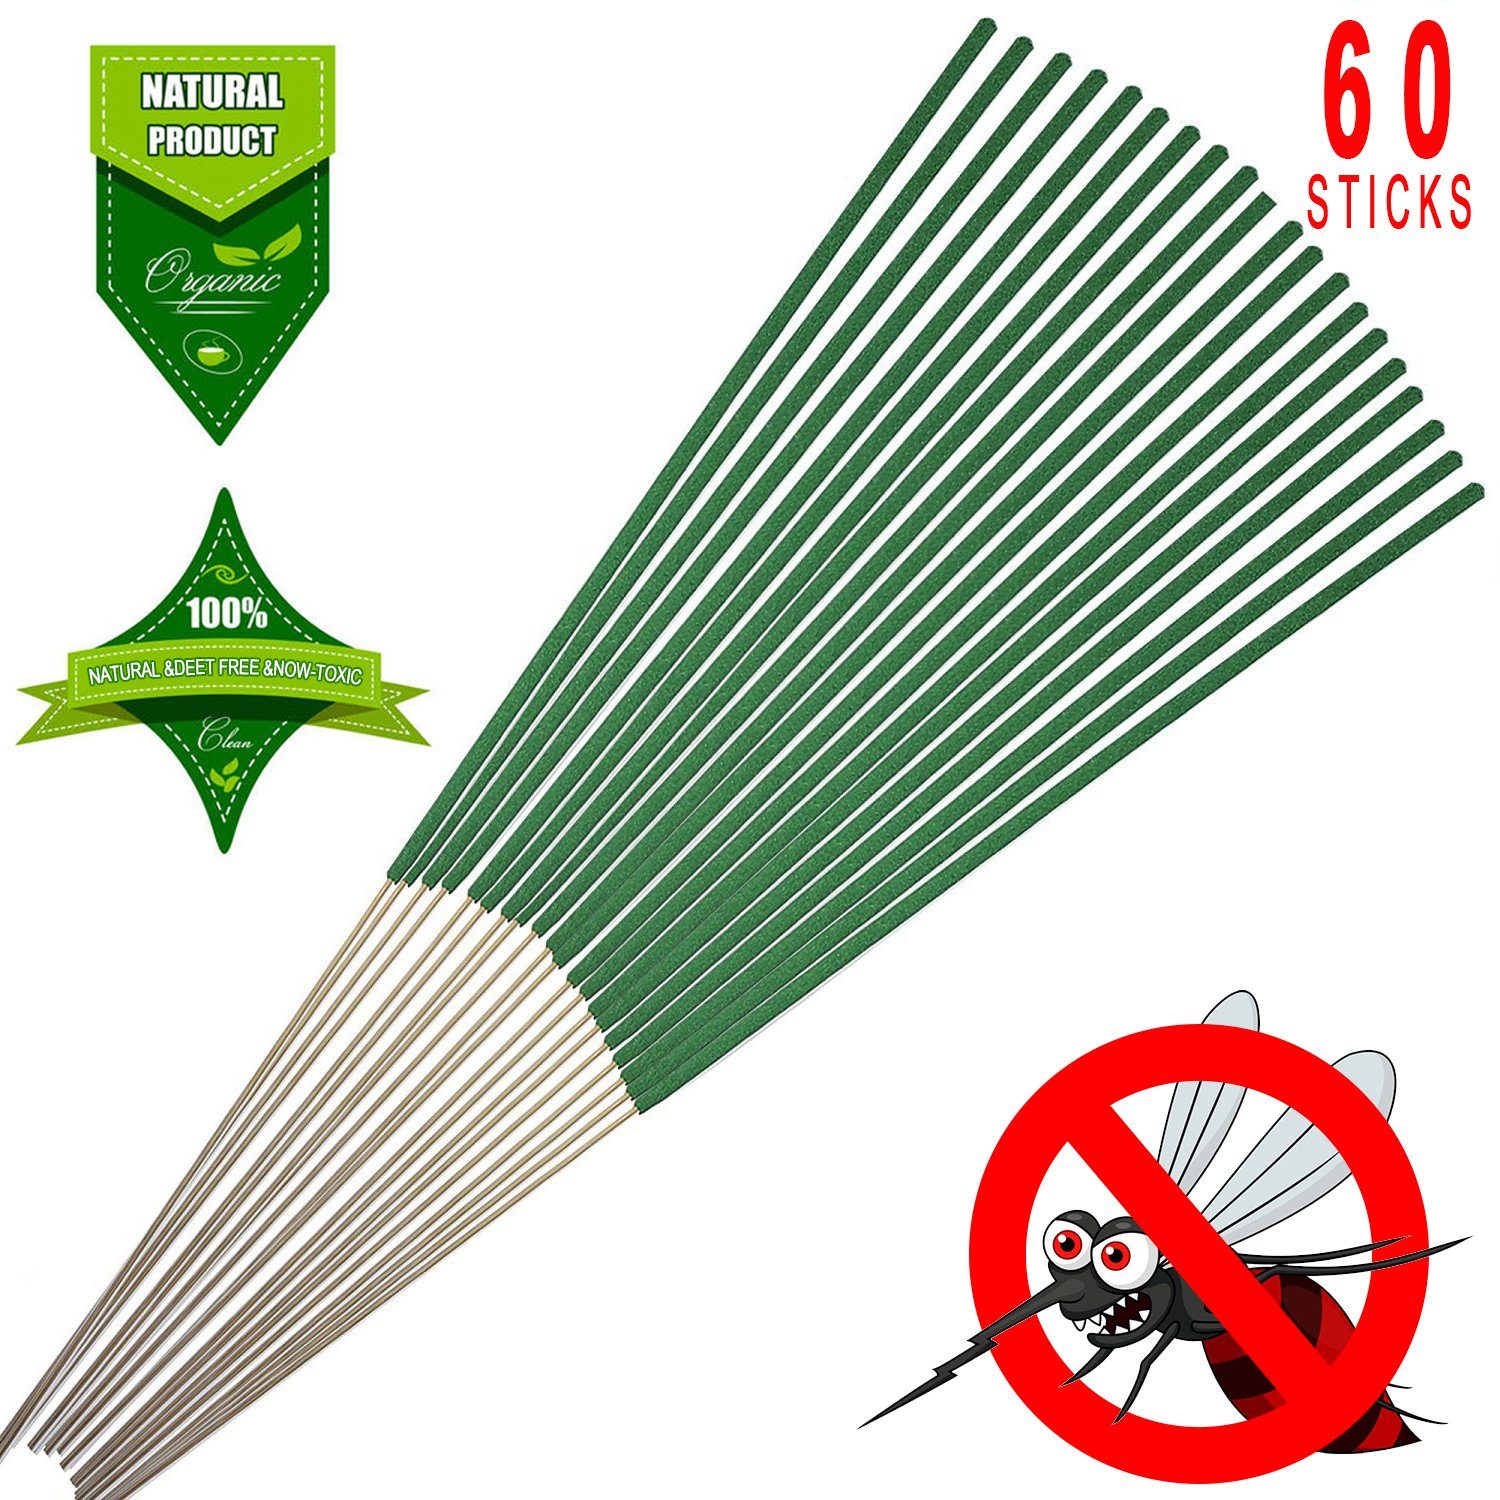 KKPOT Mosquito Repellent Sticks, 100% Natural Citronella Lemongrass Outdoor Bug Insect Incense Sticks (Pack of 60) …